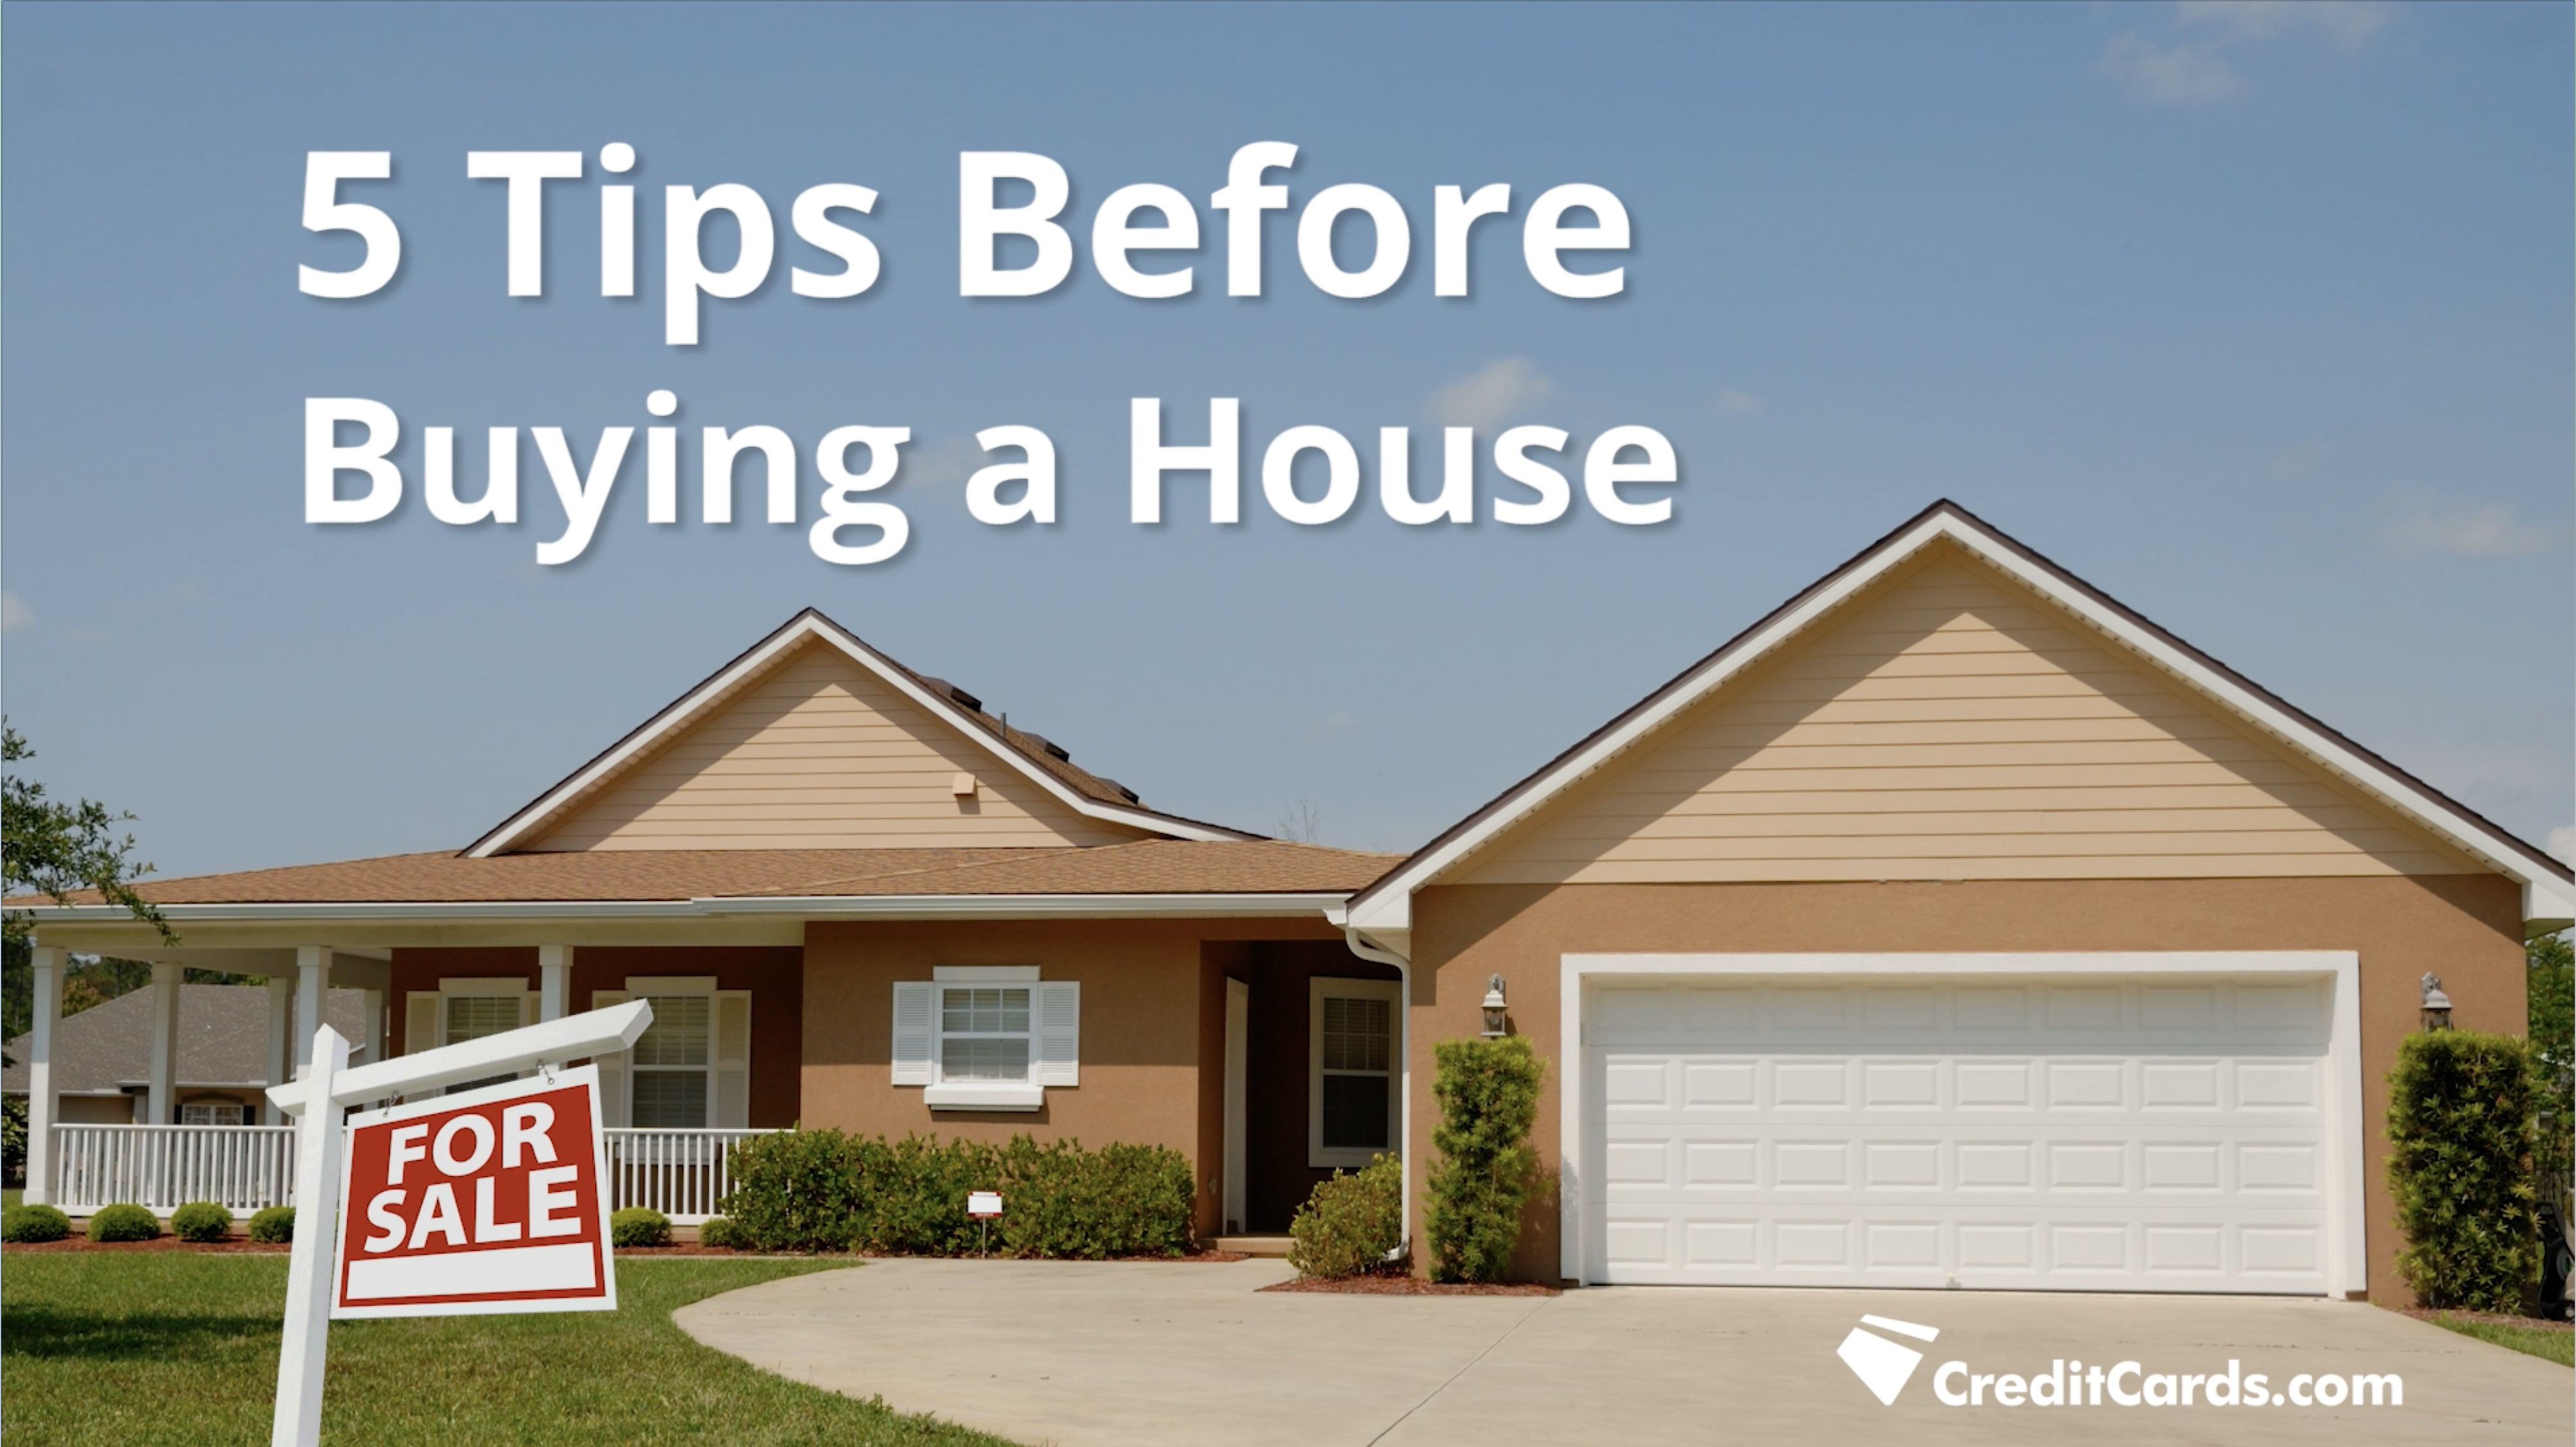 Video 5 tips before ing a house